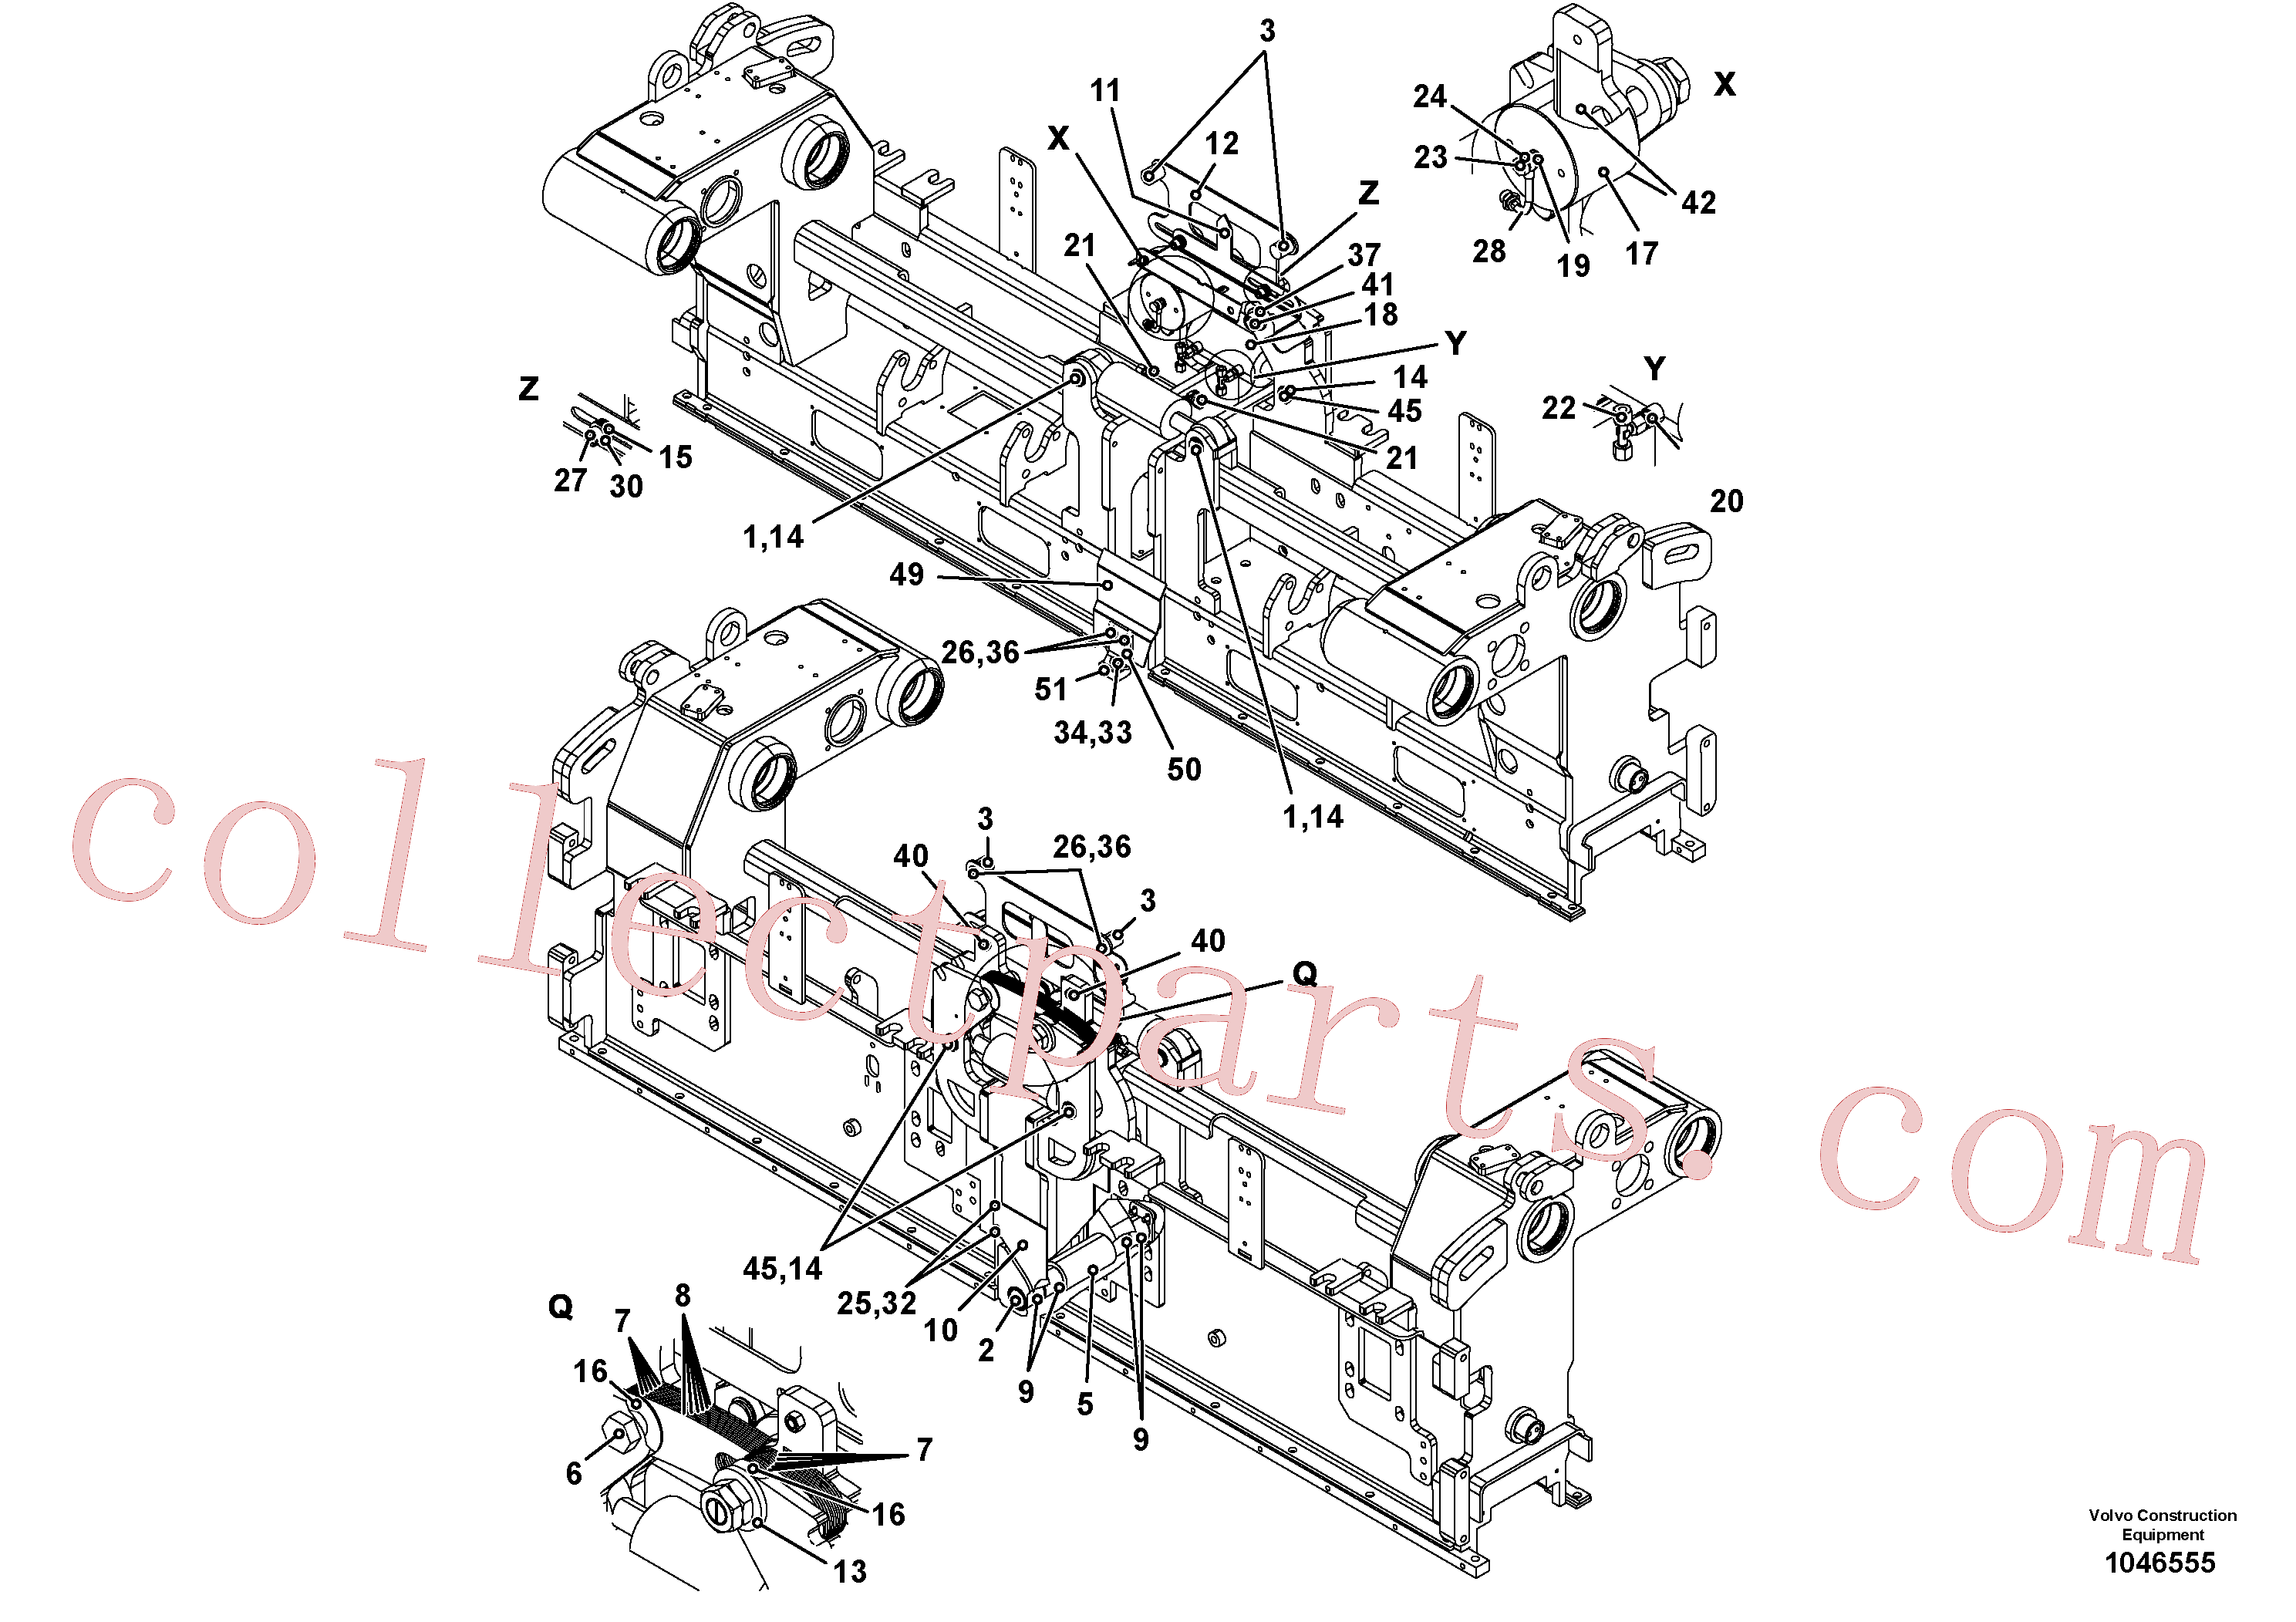 RM56295116 for Volvo Crown control for basic screed, Basic screed and crown control(1046555 assembly)